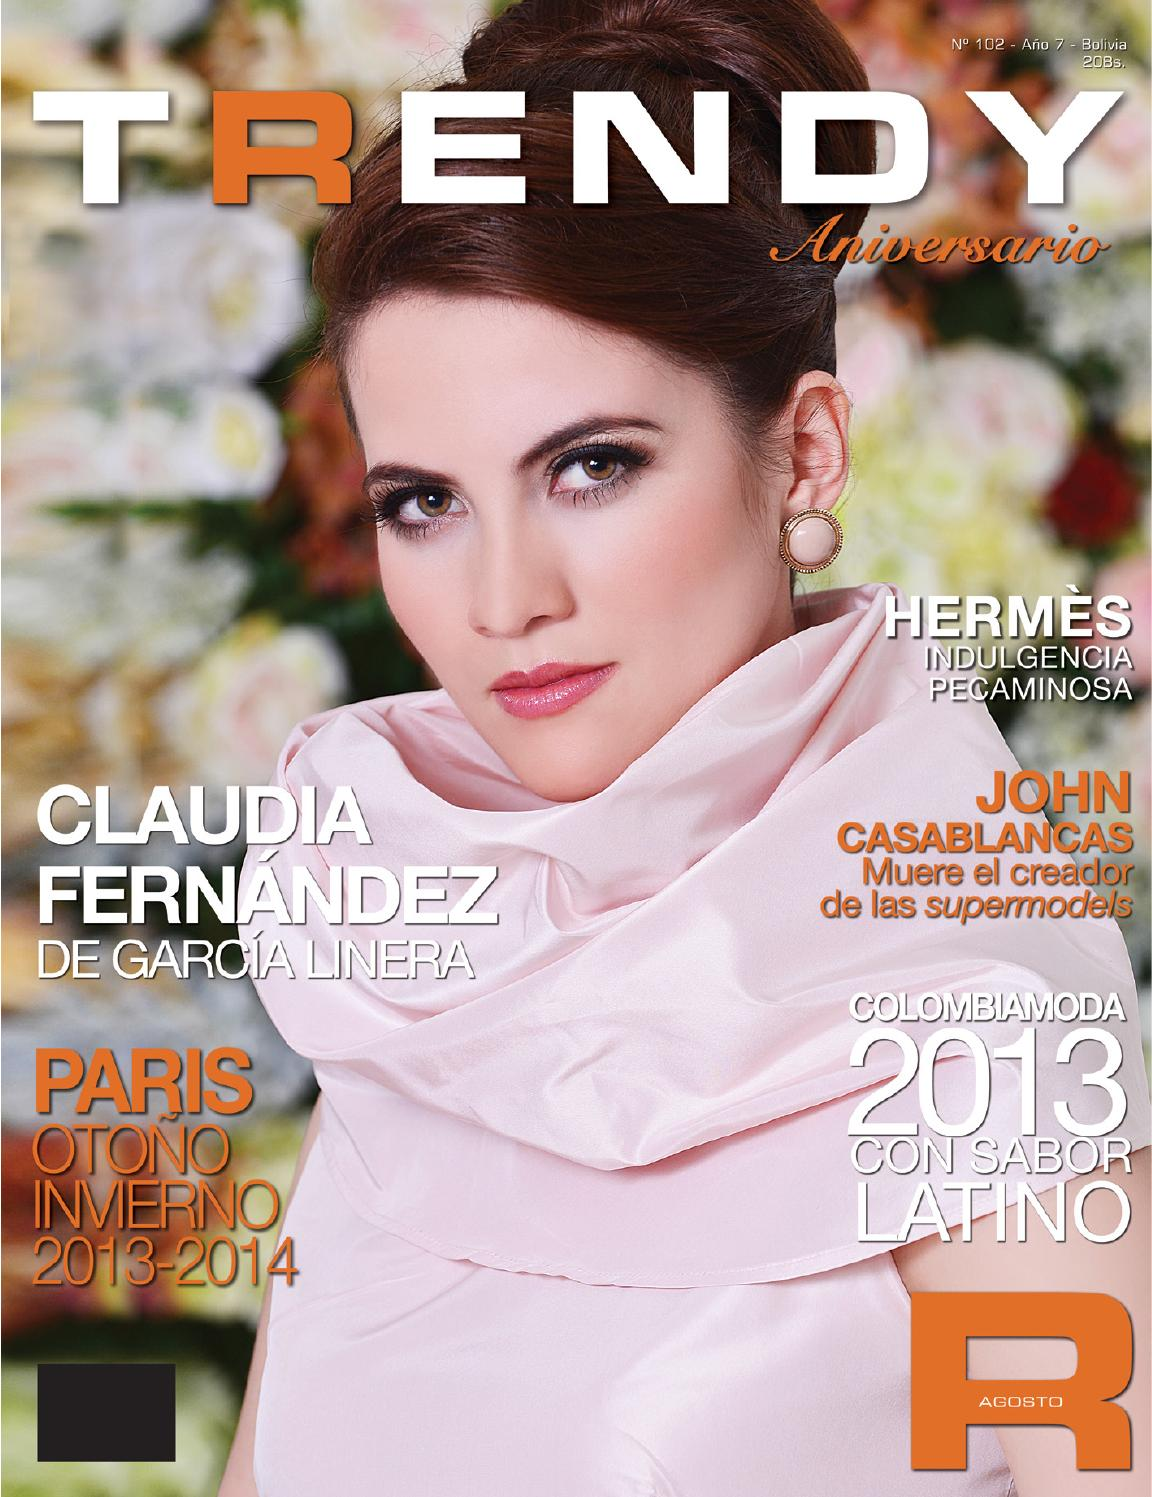 Trendy 102 by CARLOS PARDO - issuu